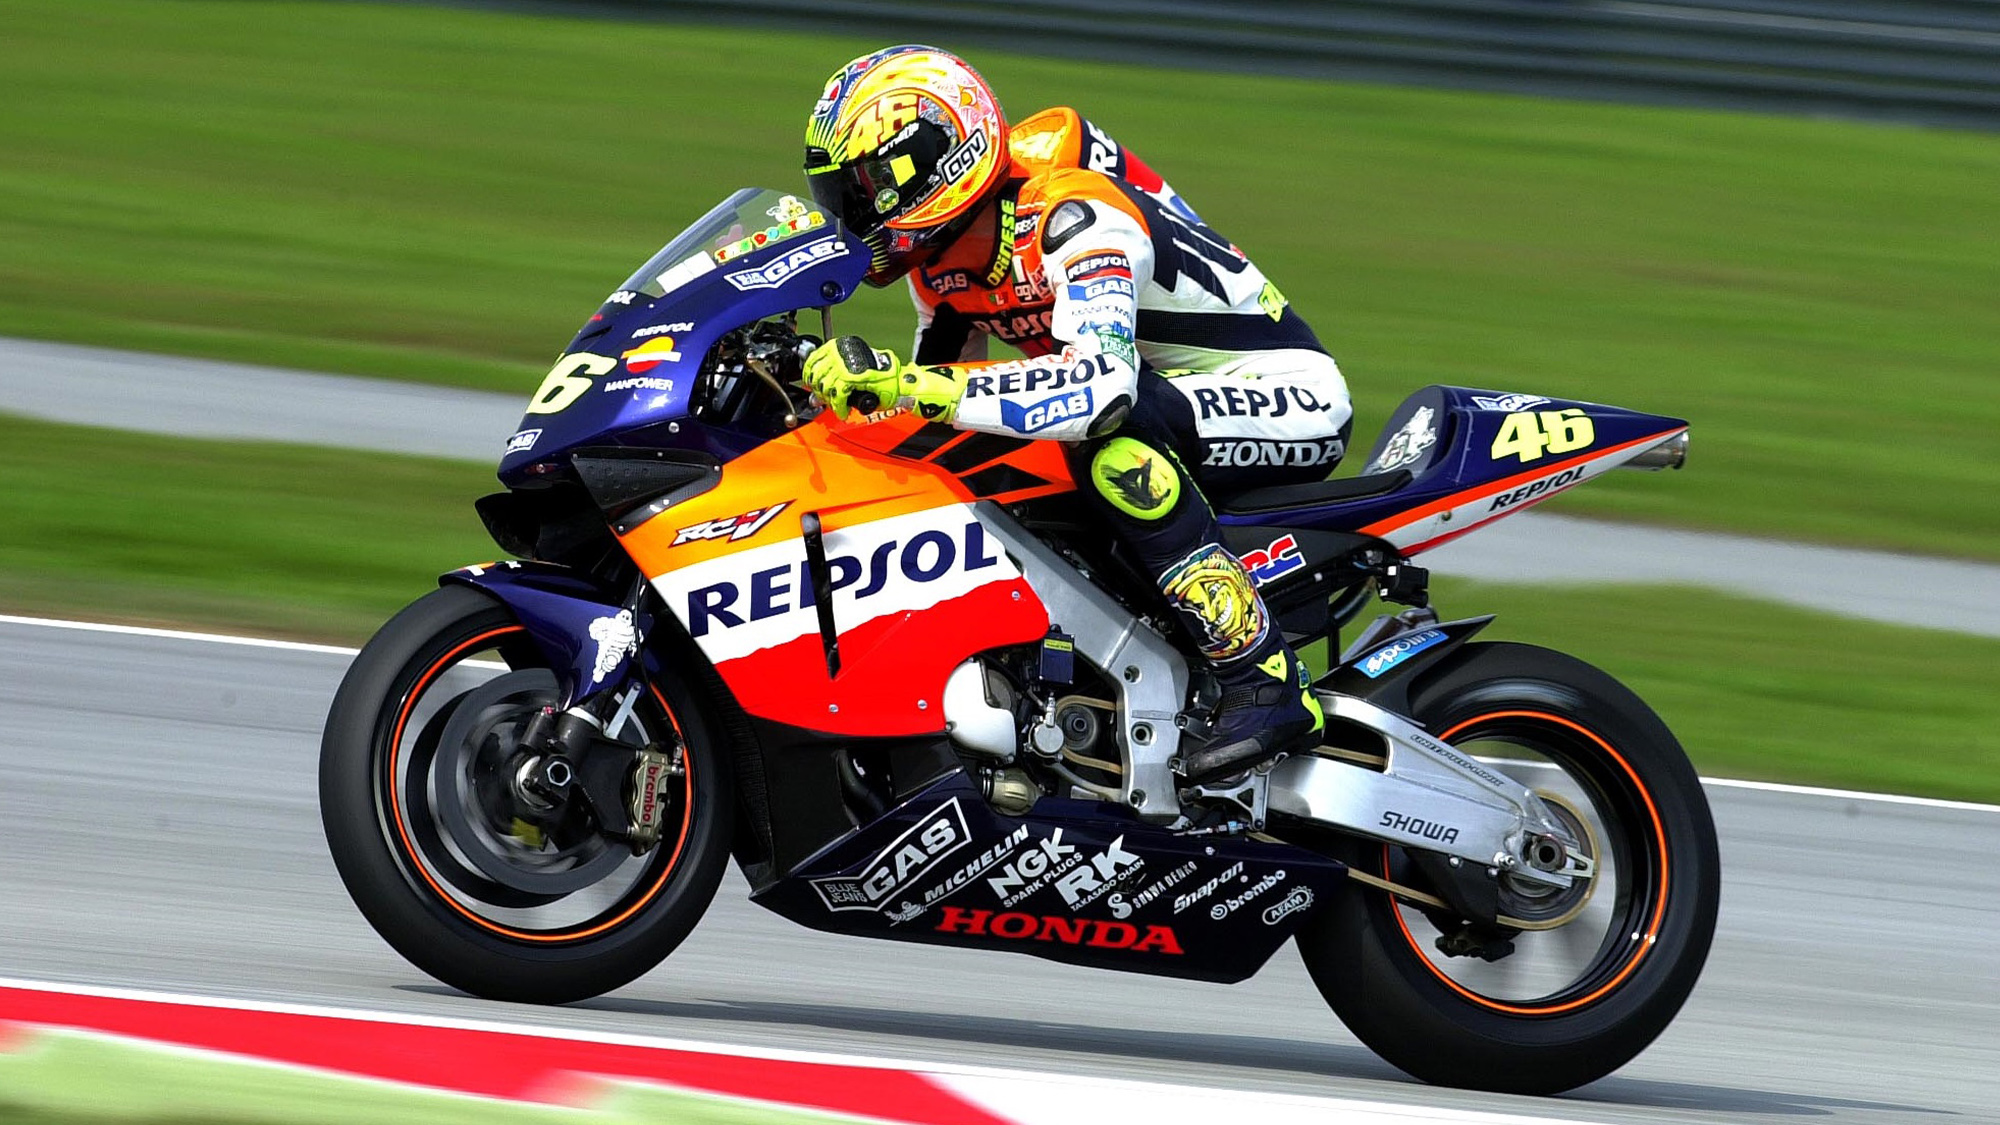 MotoGP's biggest winners: Rossi and Honda